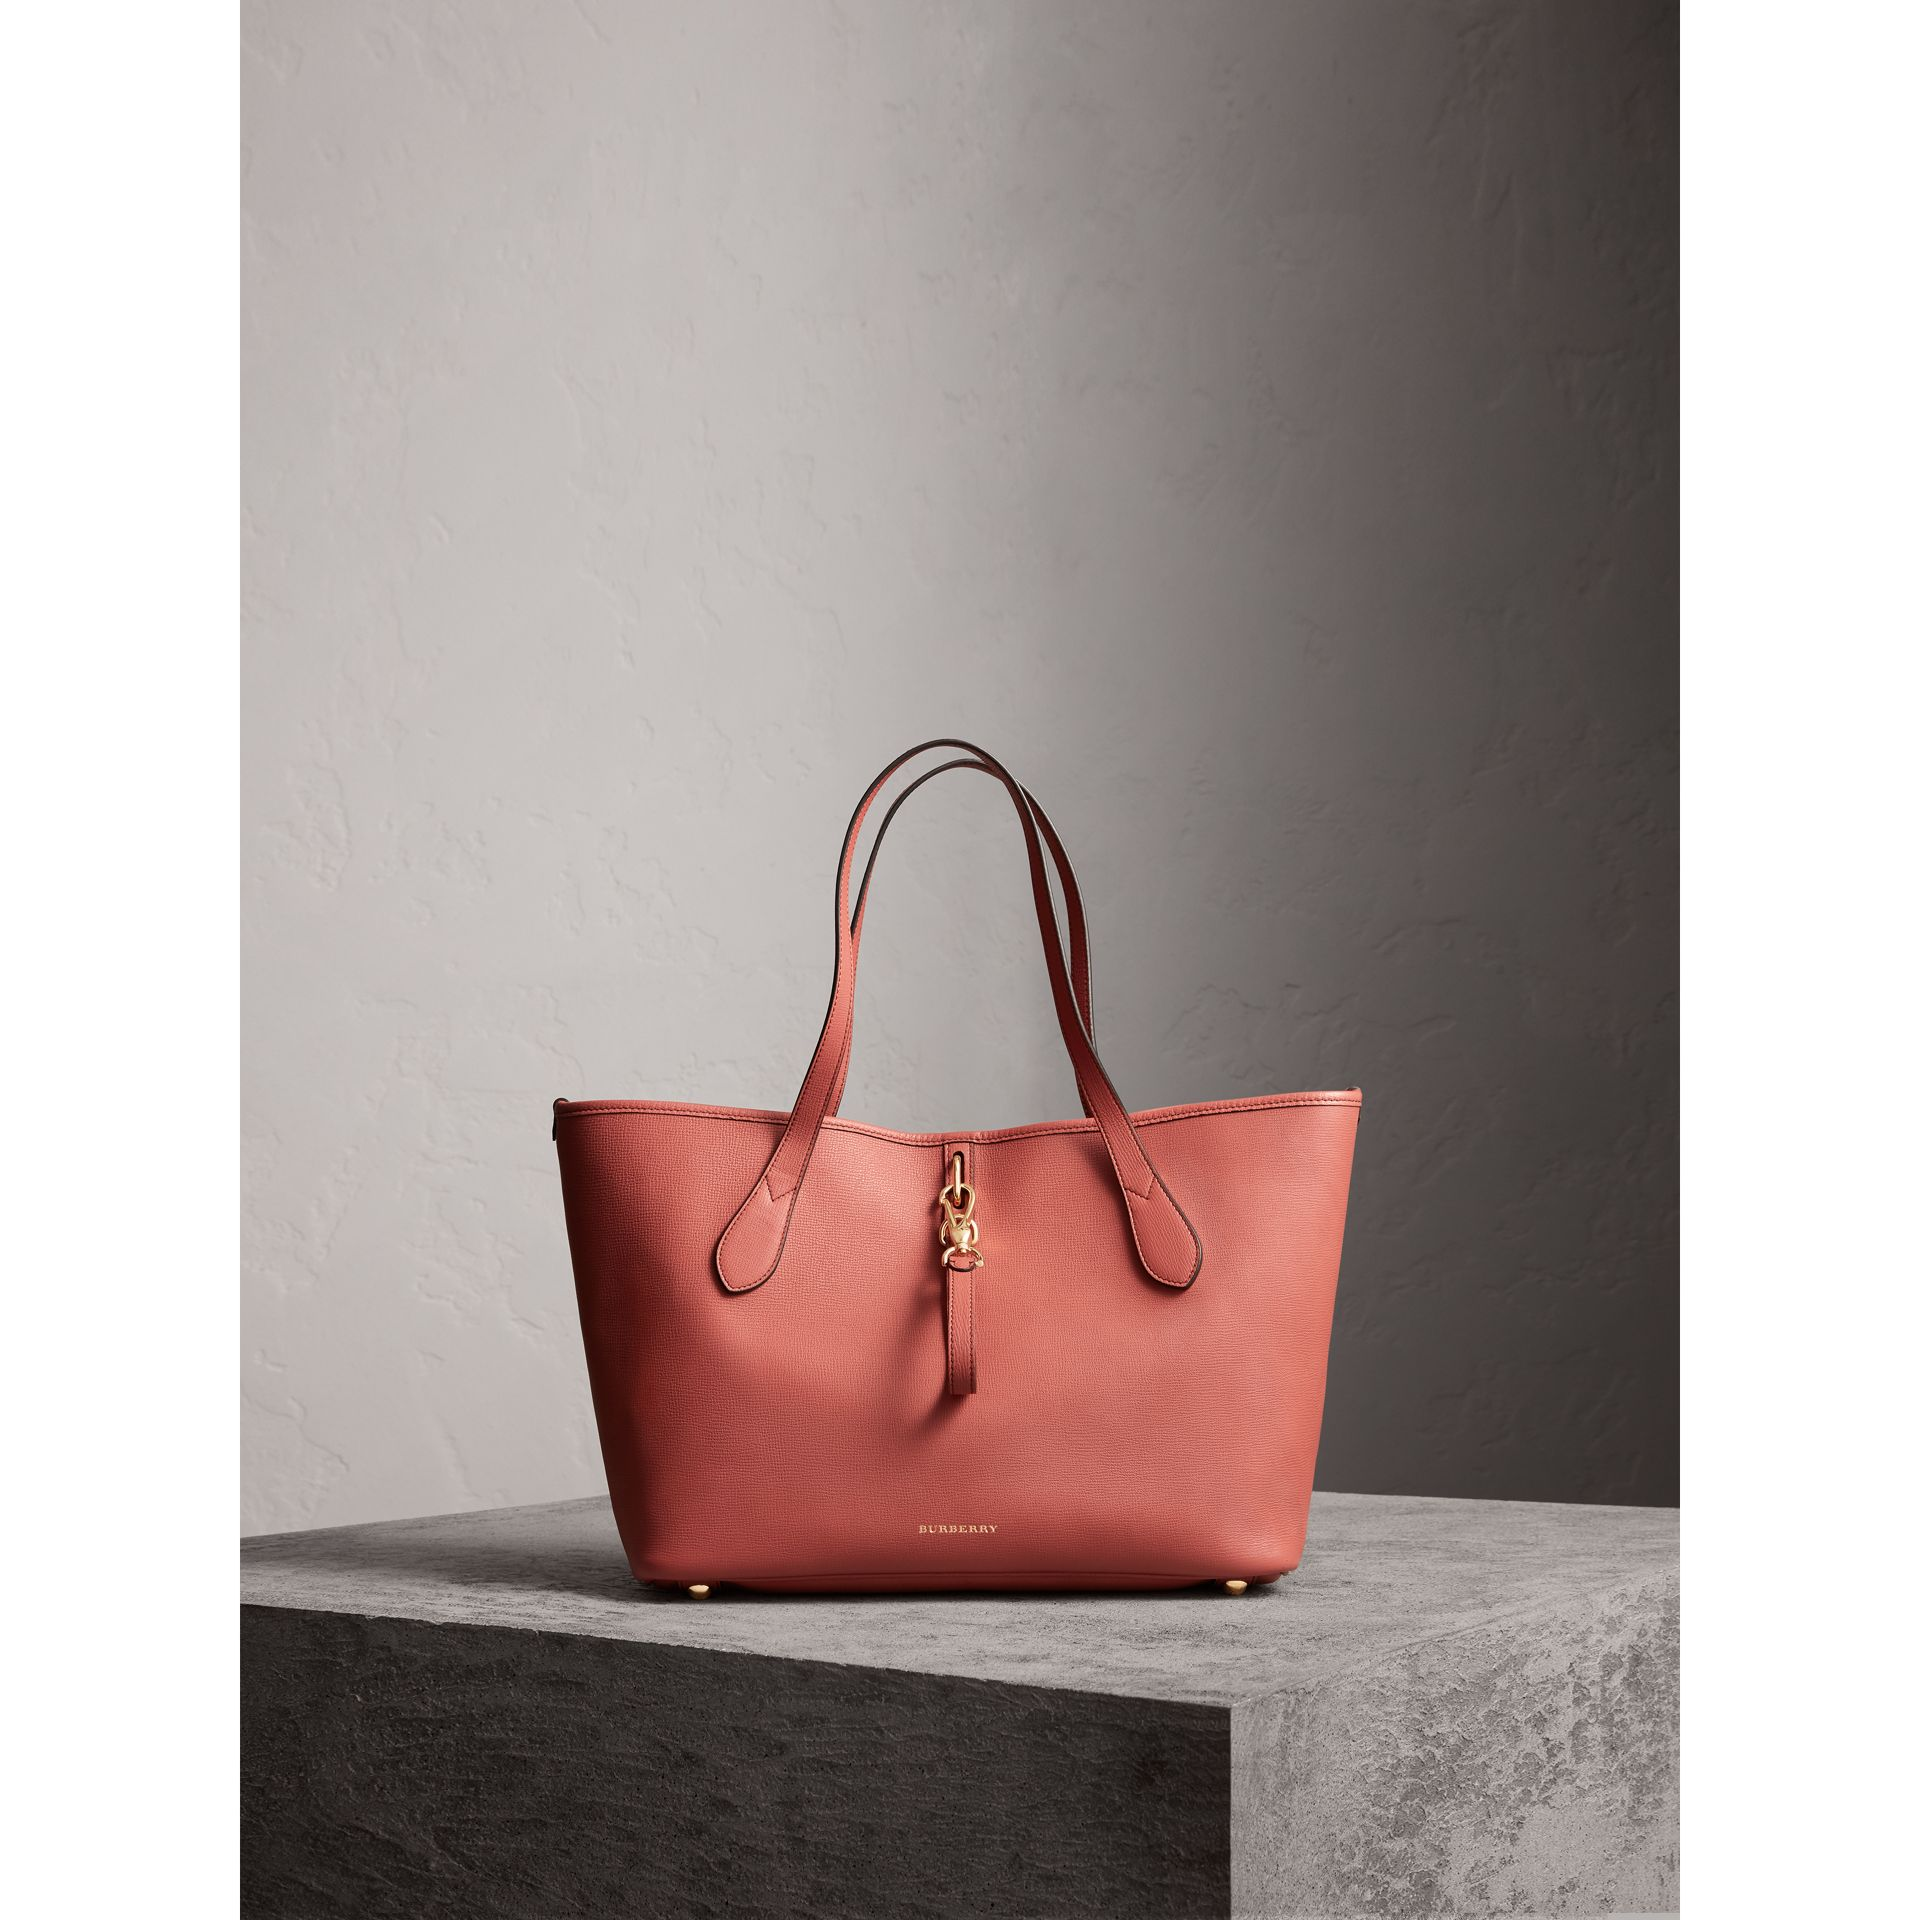 Medium Grainy Leather Tote Bag in Cinnamon Red - Women | Burberry - gallery image 7